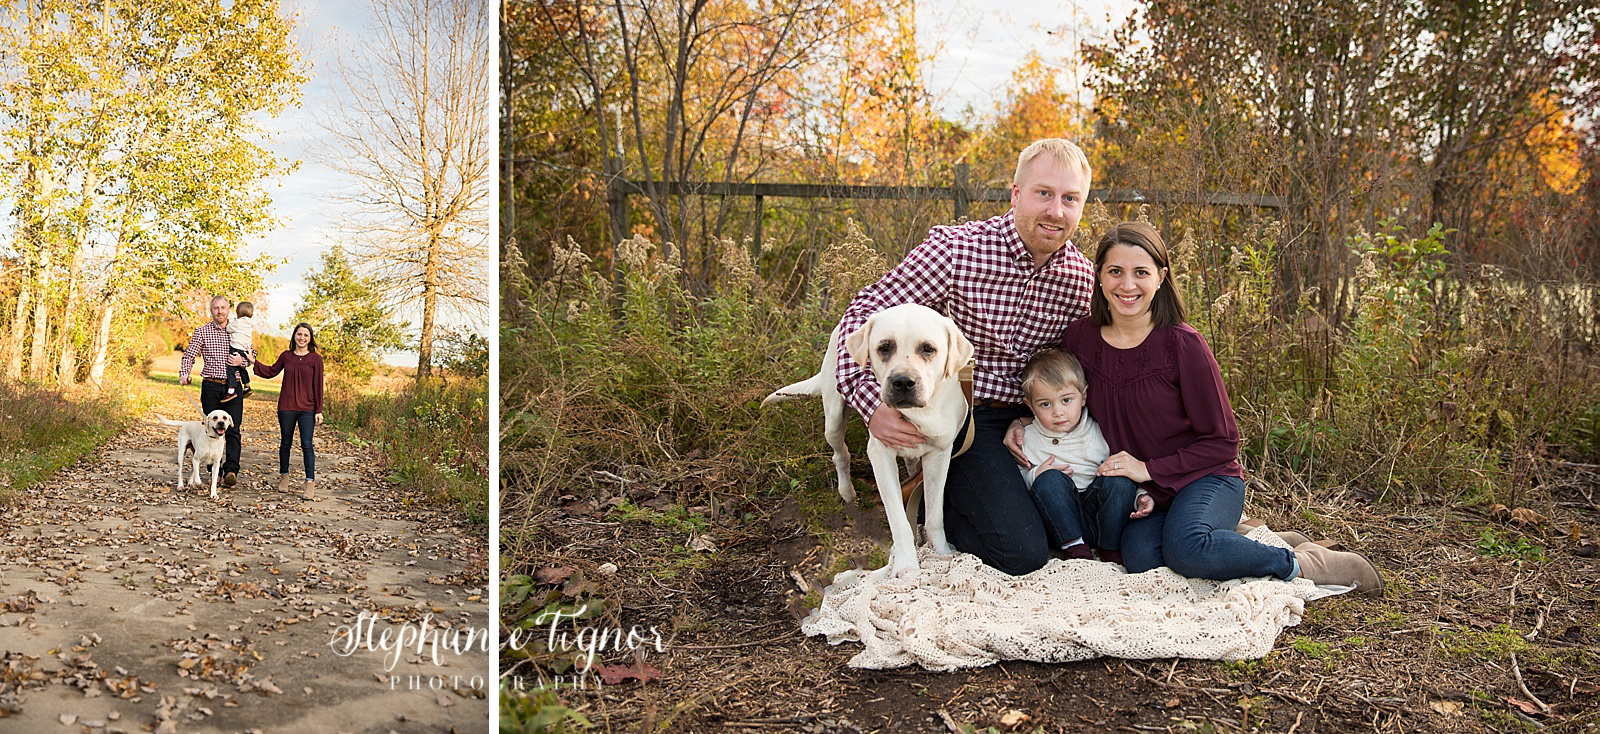 Stephanie Tignor Photography | Fredericksburg VA Family Photographer | Warrenton VA Family Photographer | Stafford VA Family Photographer | Family Photographer | Fairfax VA Family Photographer | Spotsylvania VA Family Photographer | Virginia Family Photographer